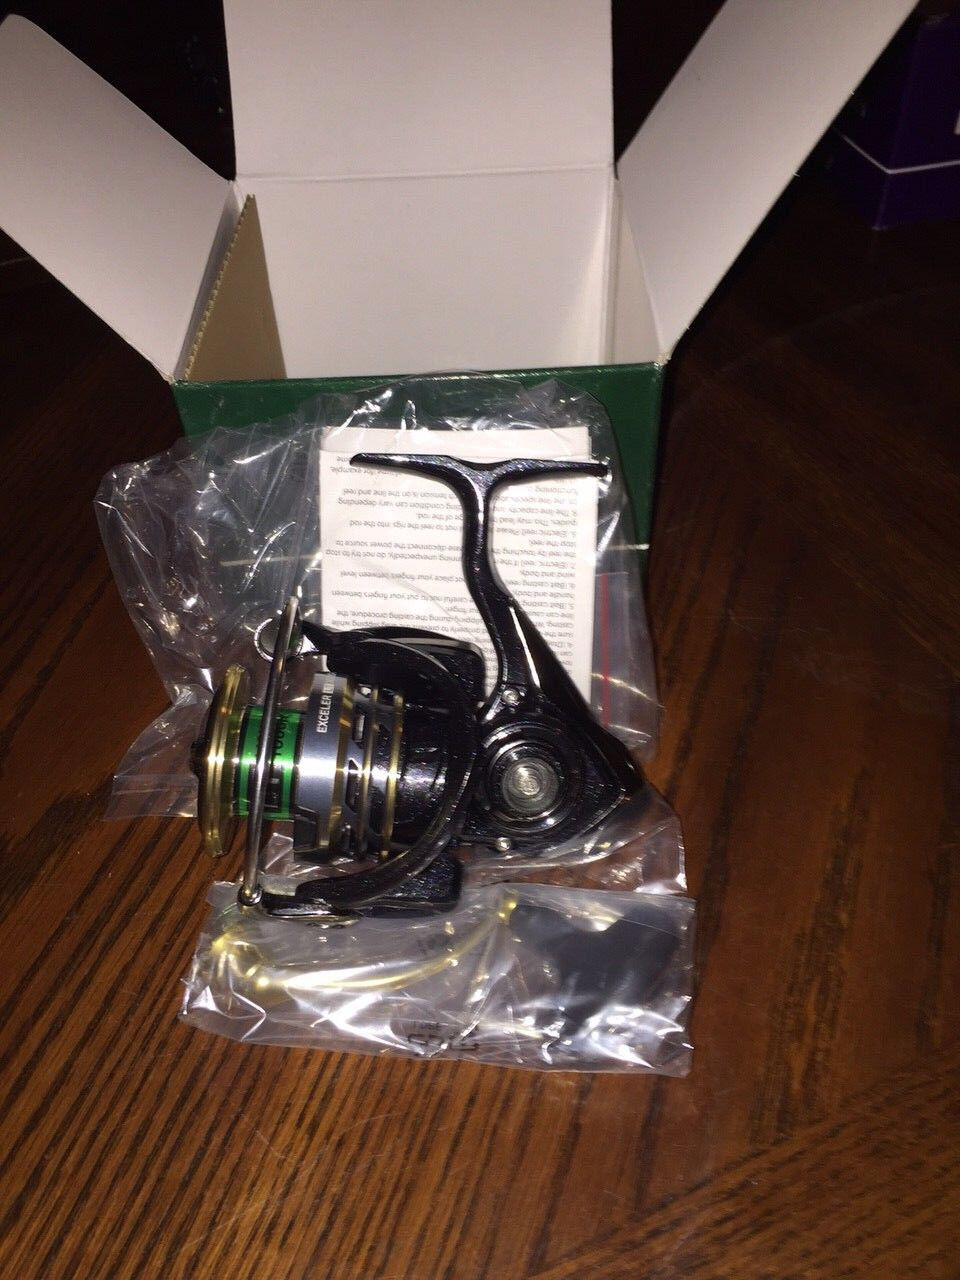 NEW Daiwa Exceler LT 2500D Spinning Reel, Carbon Light Body, 5.3 1 EXLT2500D